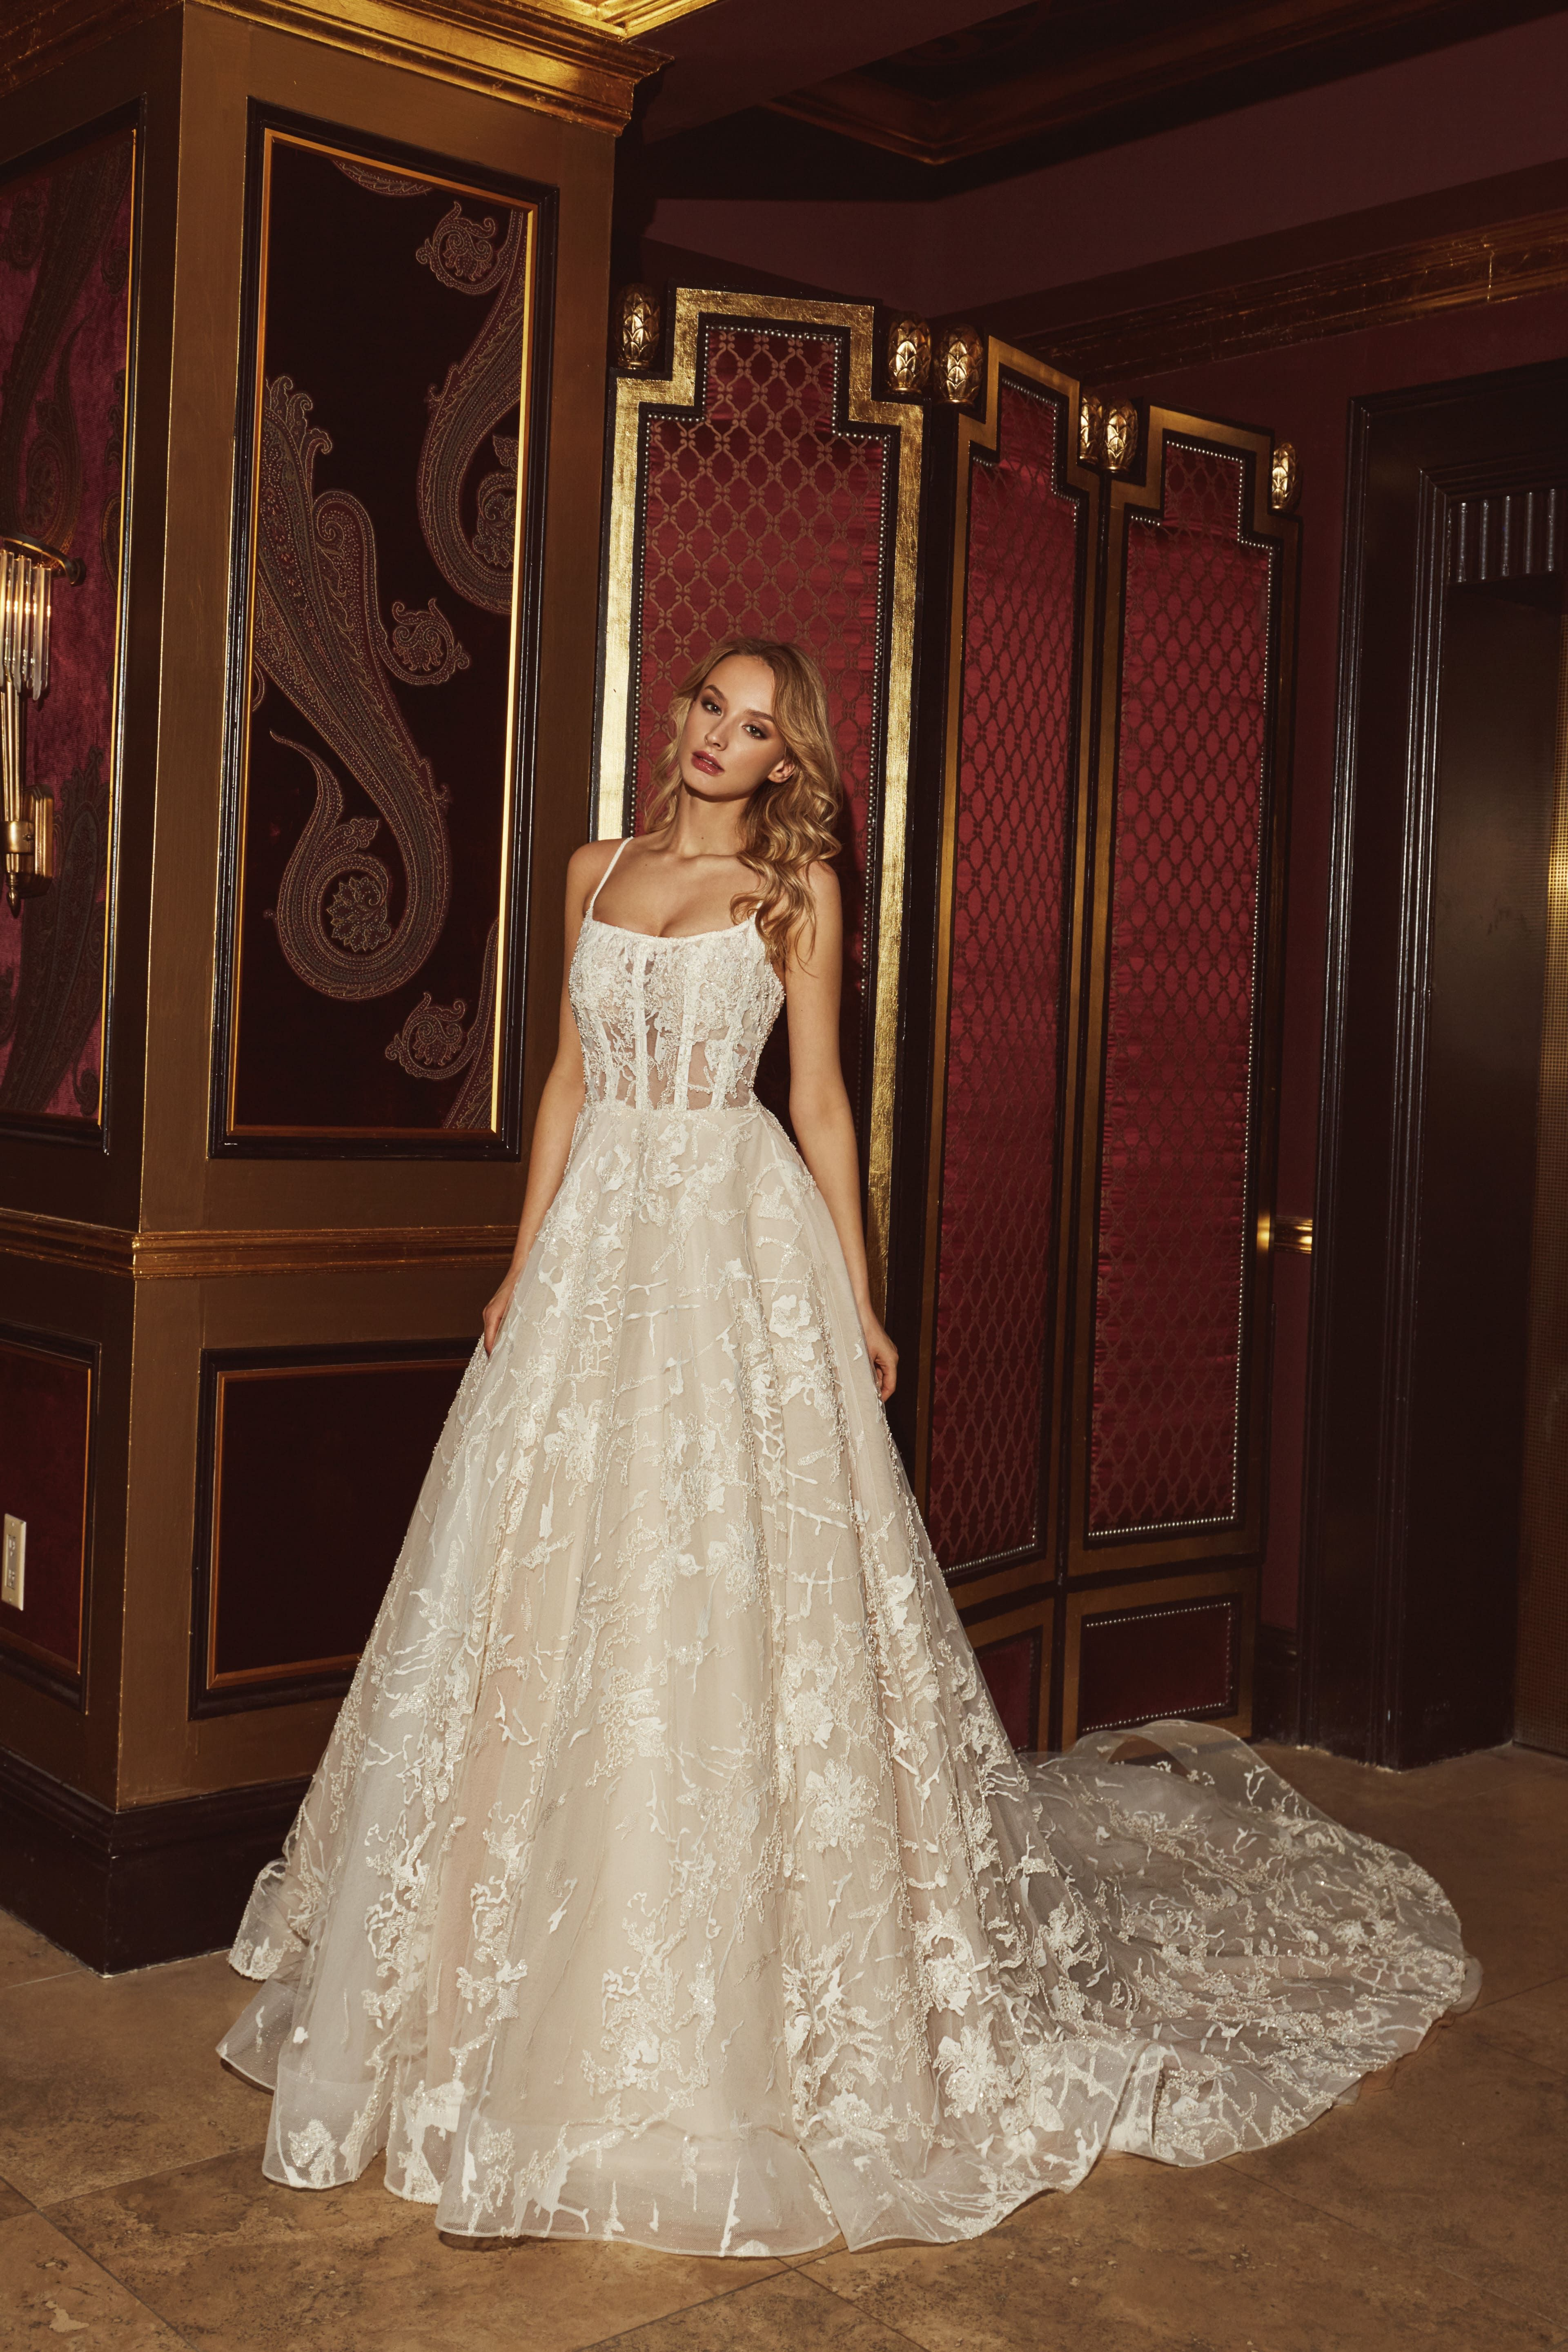 Find This Wedding Dress And More At Janene S Bridal Boutique